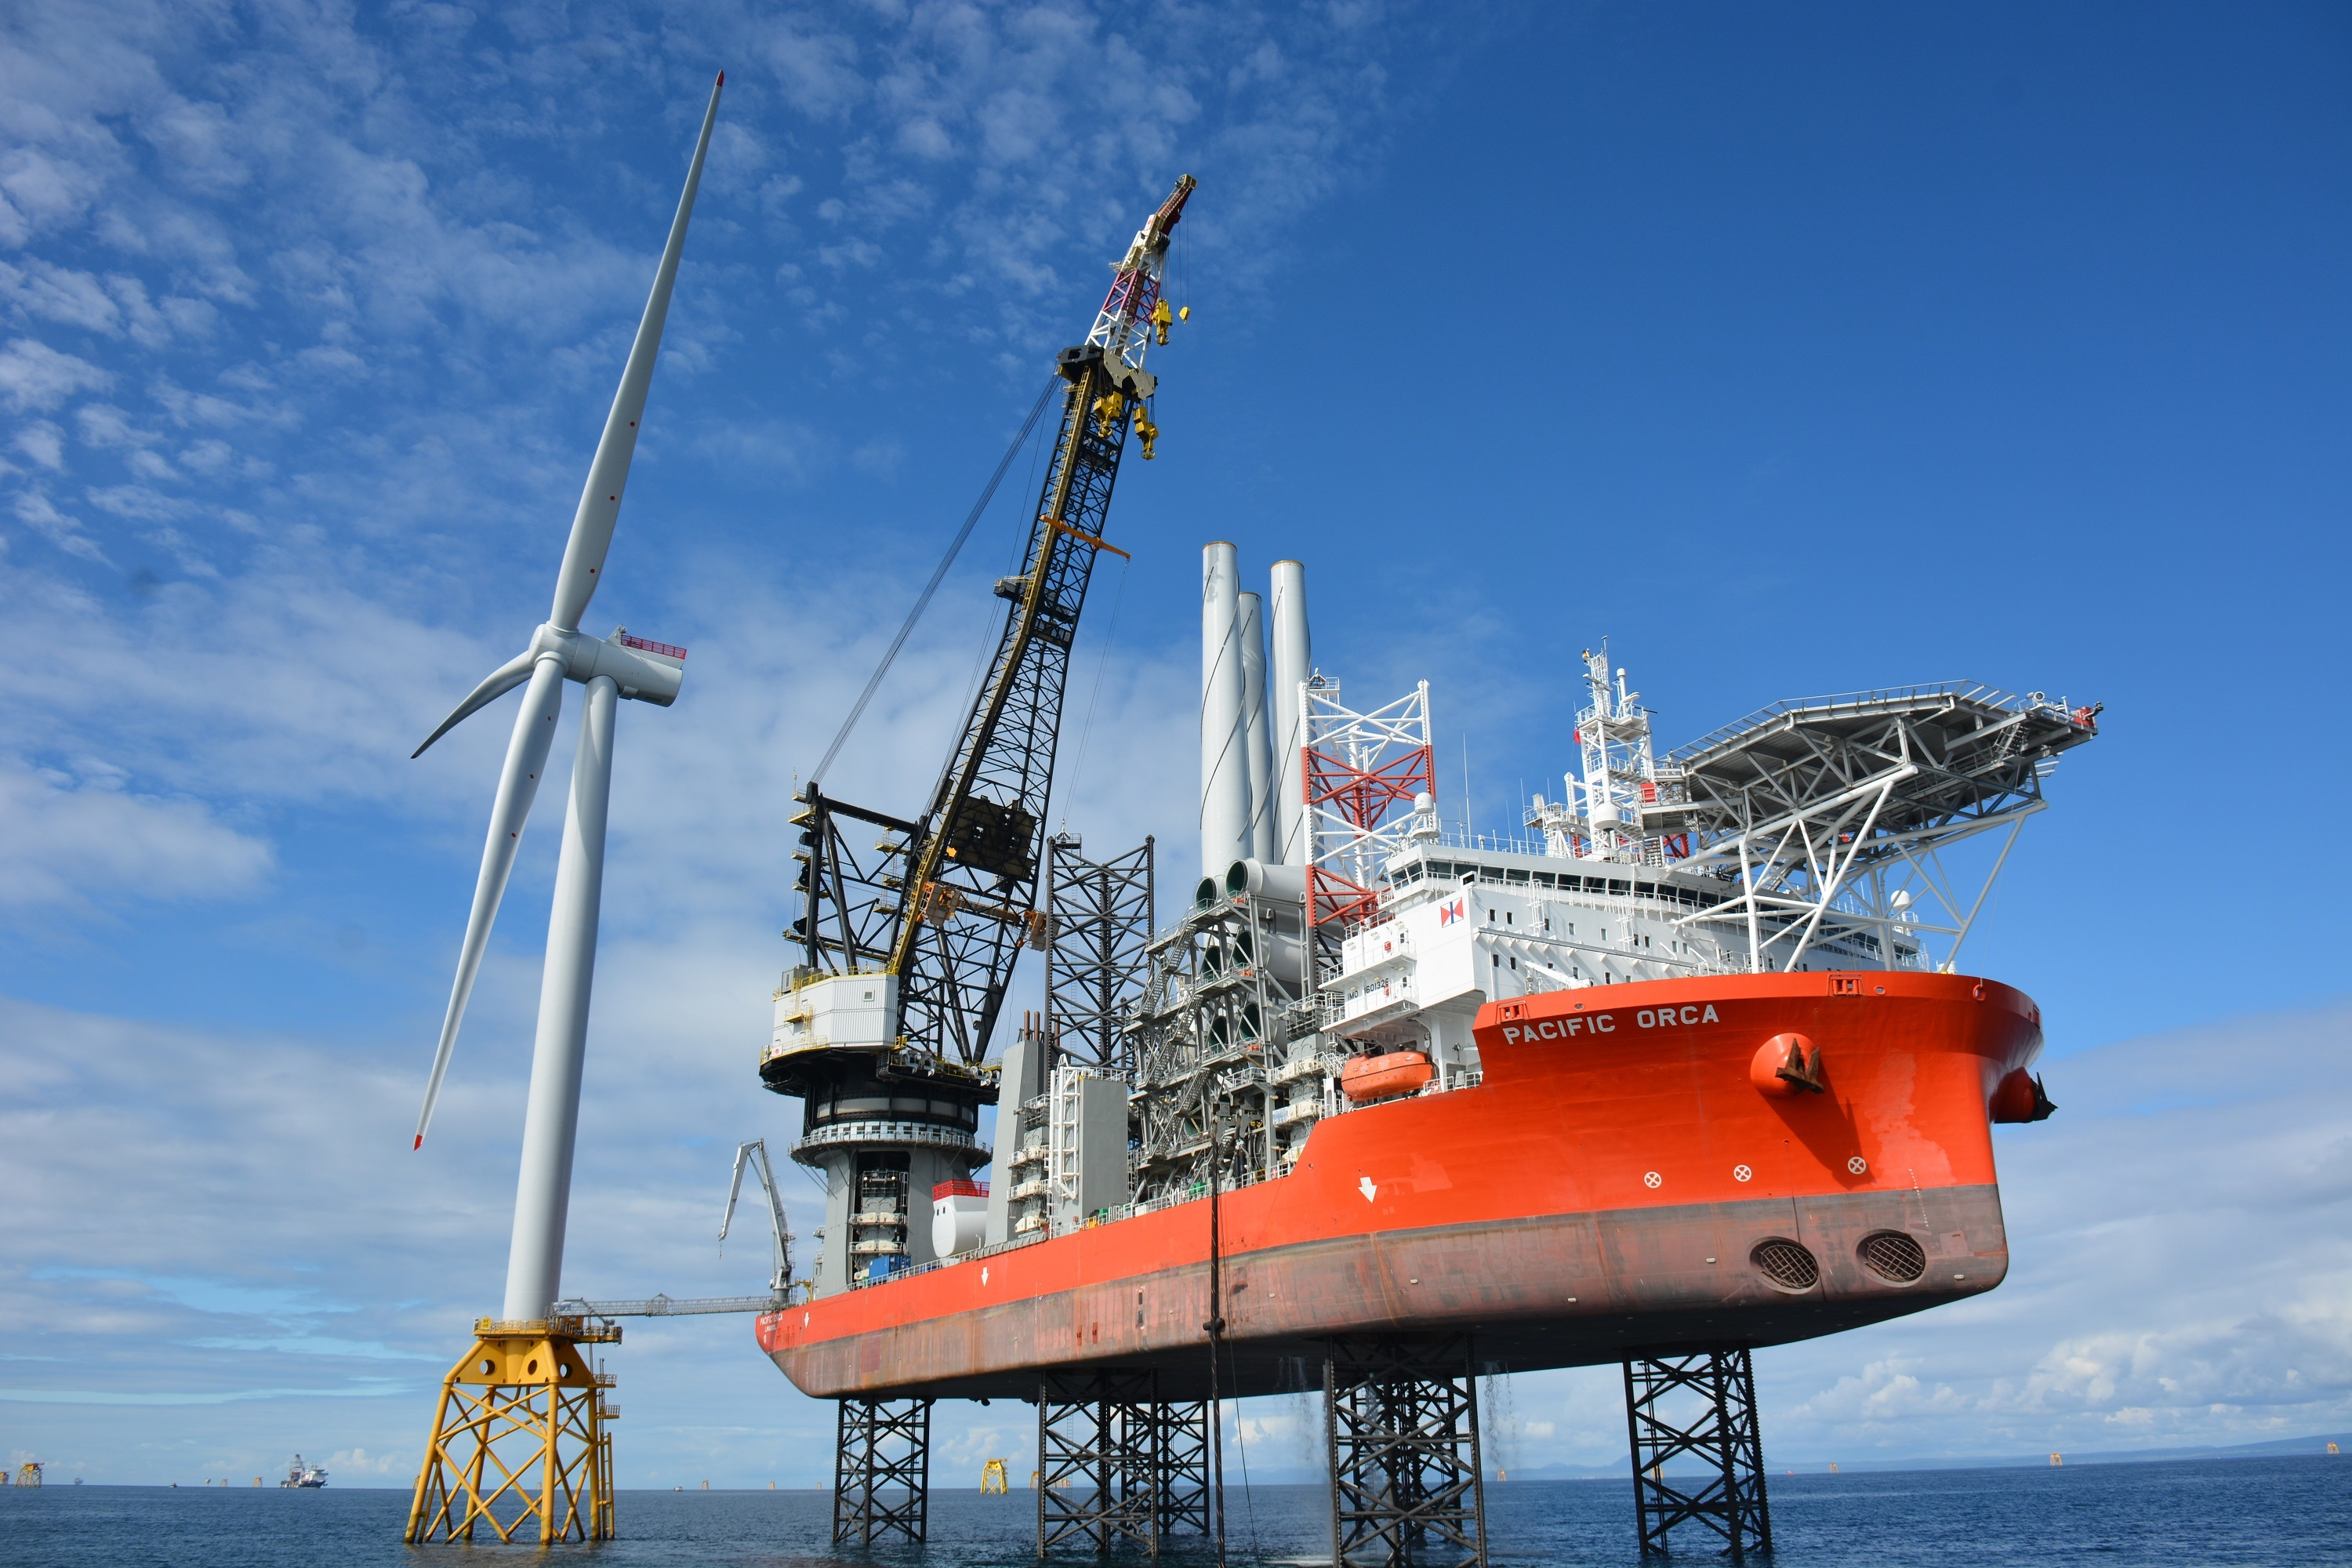 Beatrice windfarm achieved first power in July